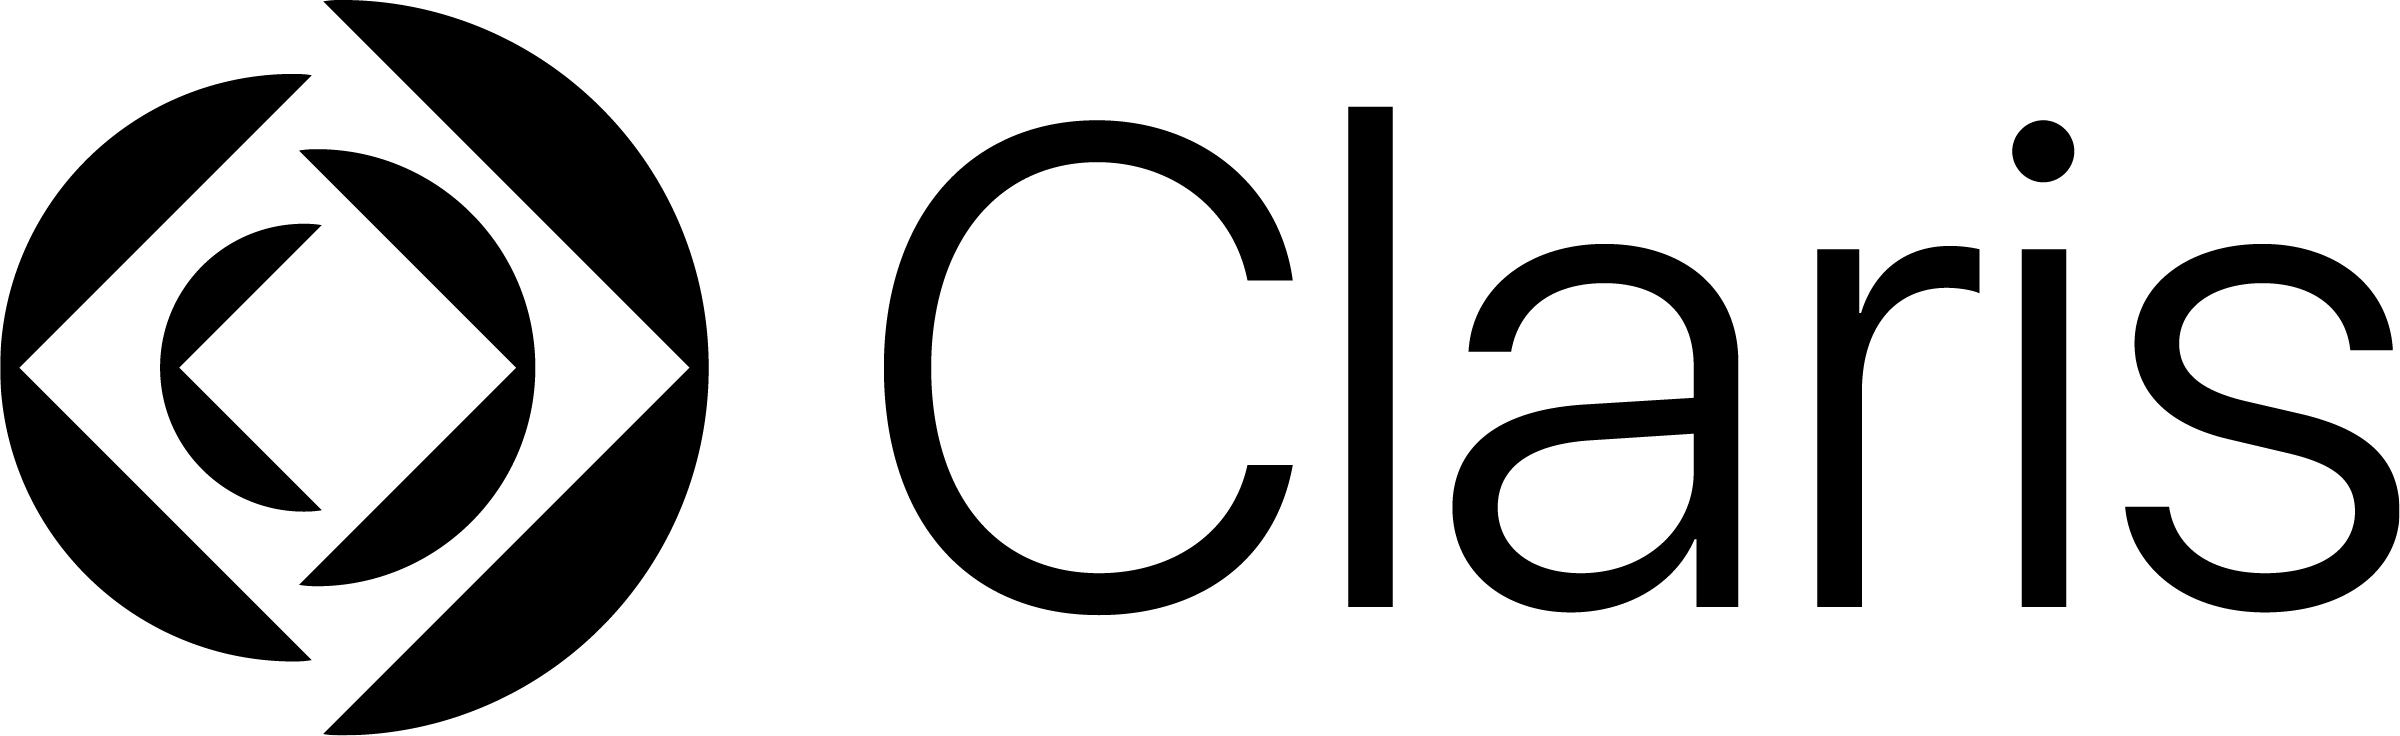 Claris logo rgb blk Apple subsidiary FileMaker Inc. changes its name (back) to Claris Apple subsidiary FileMaker Inc. changes its name (back) to Claris Claris logo rgb blk